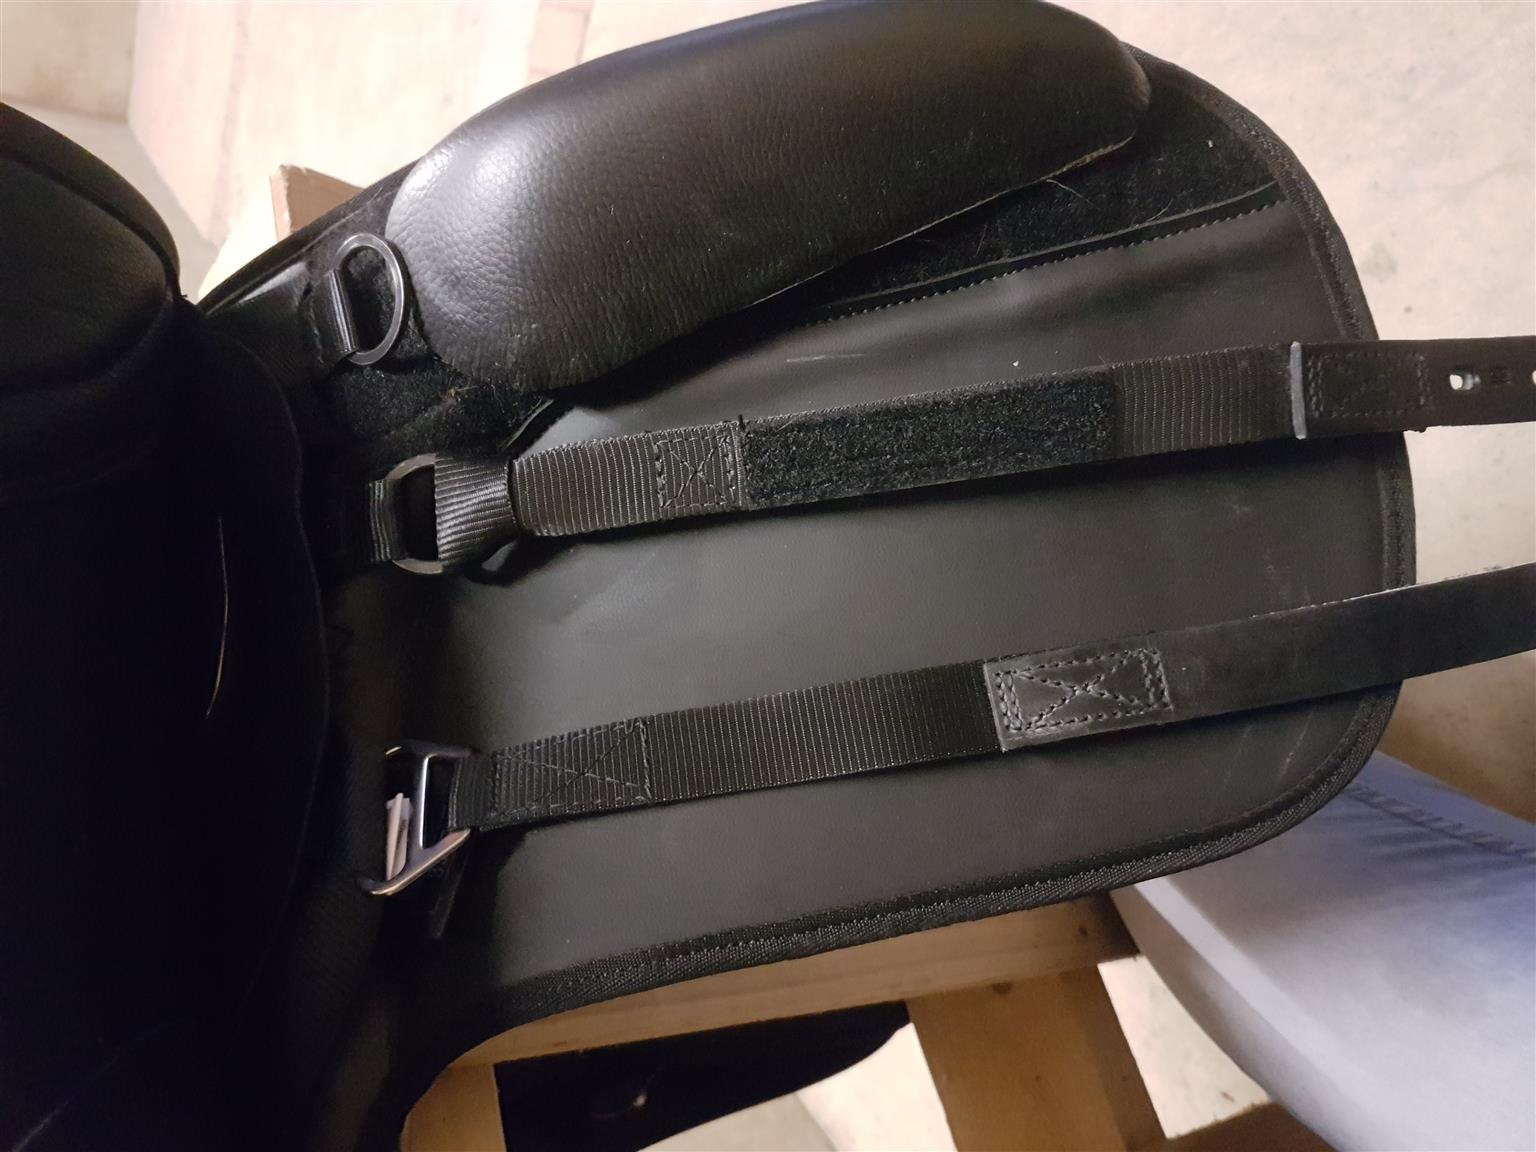 URGENT: Thorowgood Dressage saddle